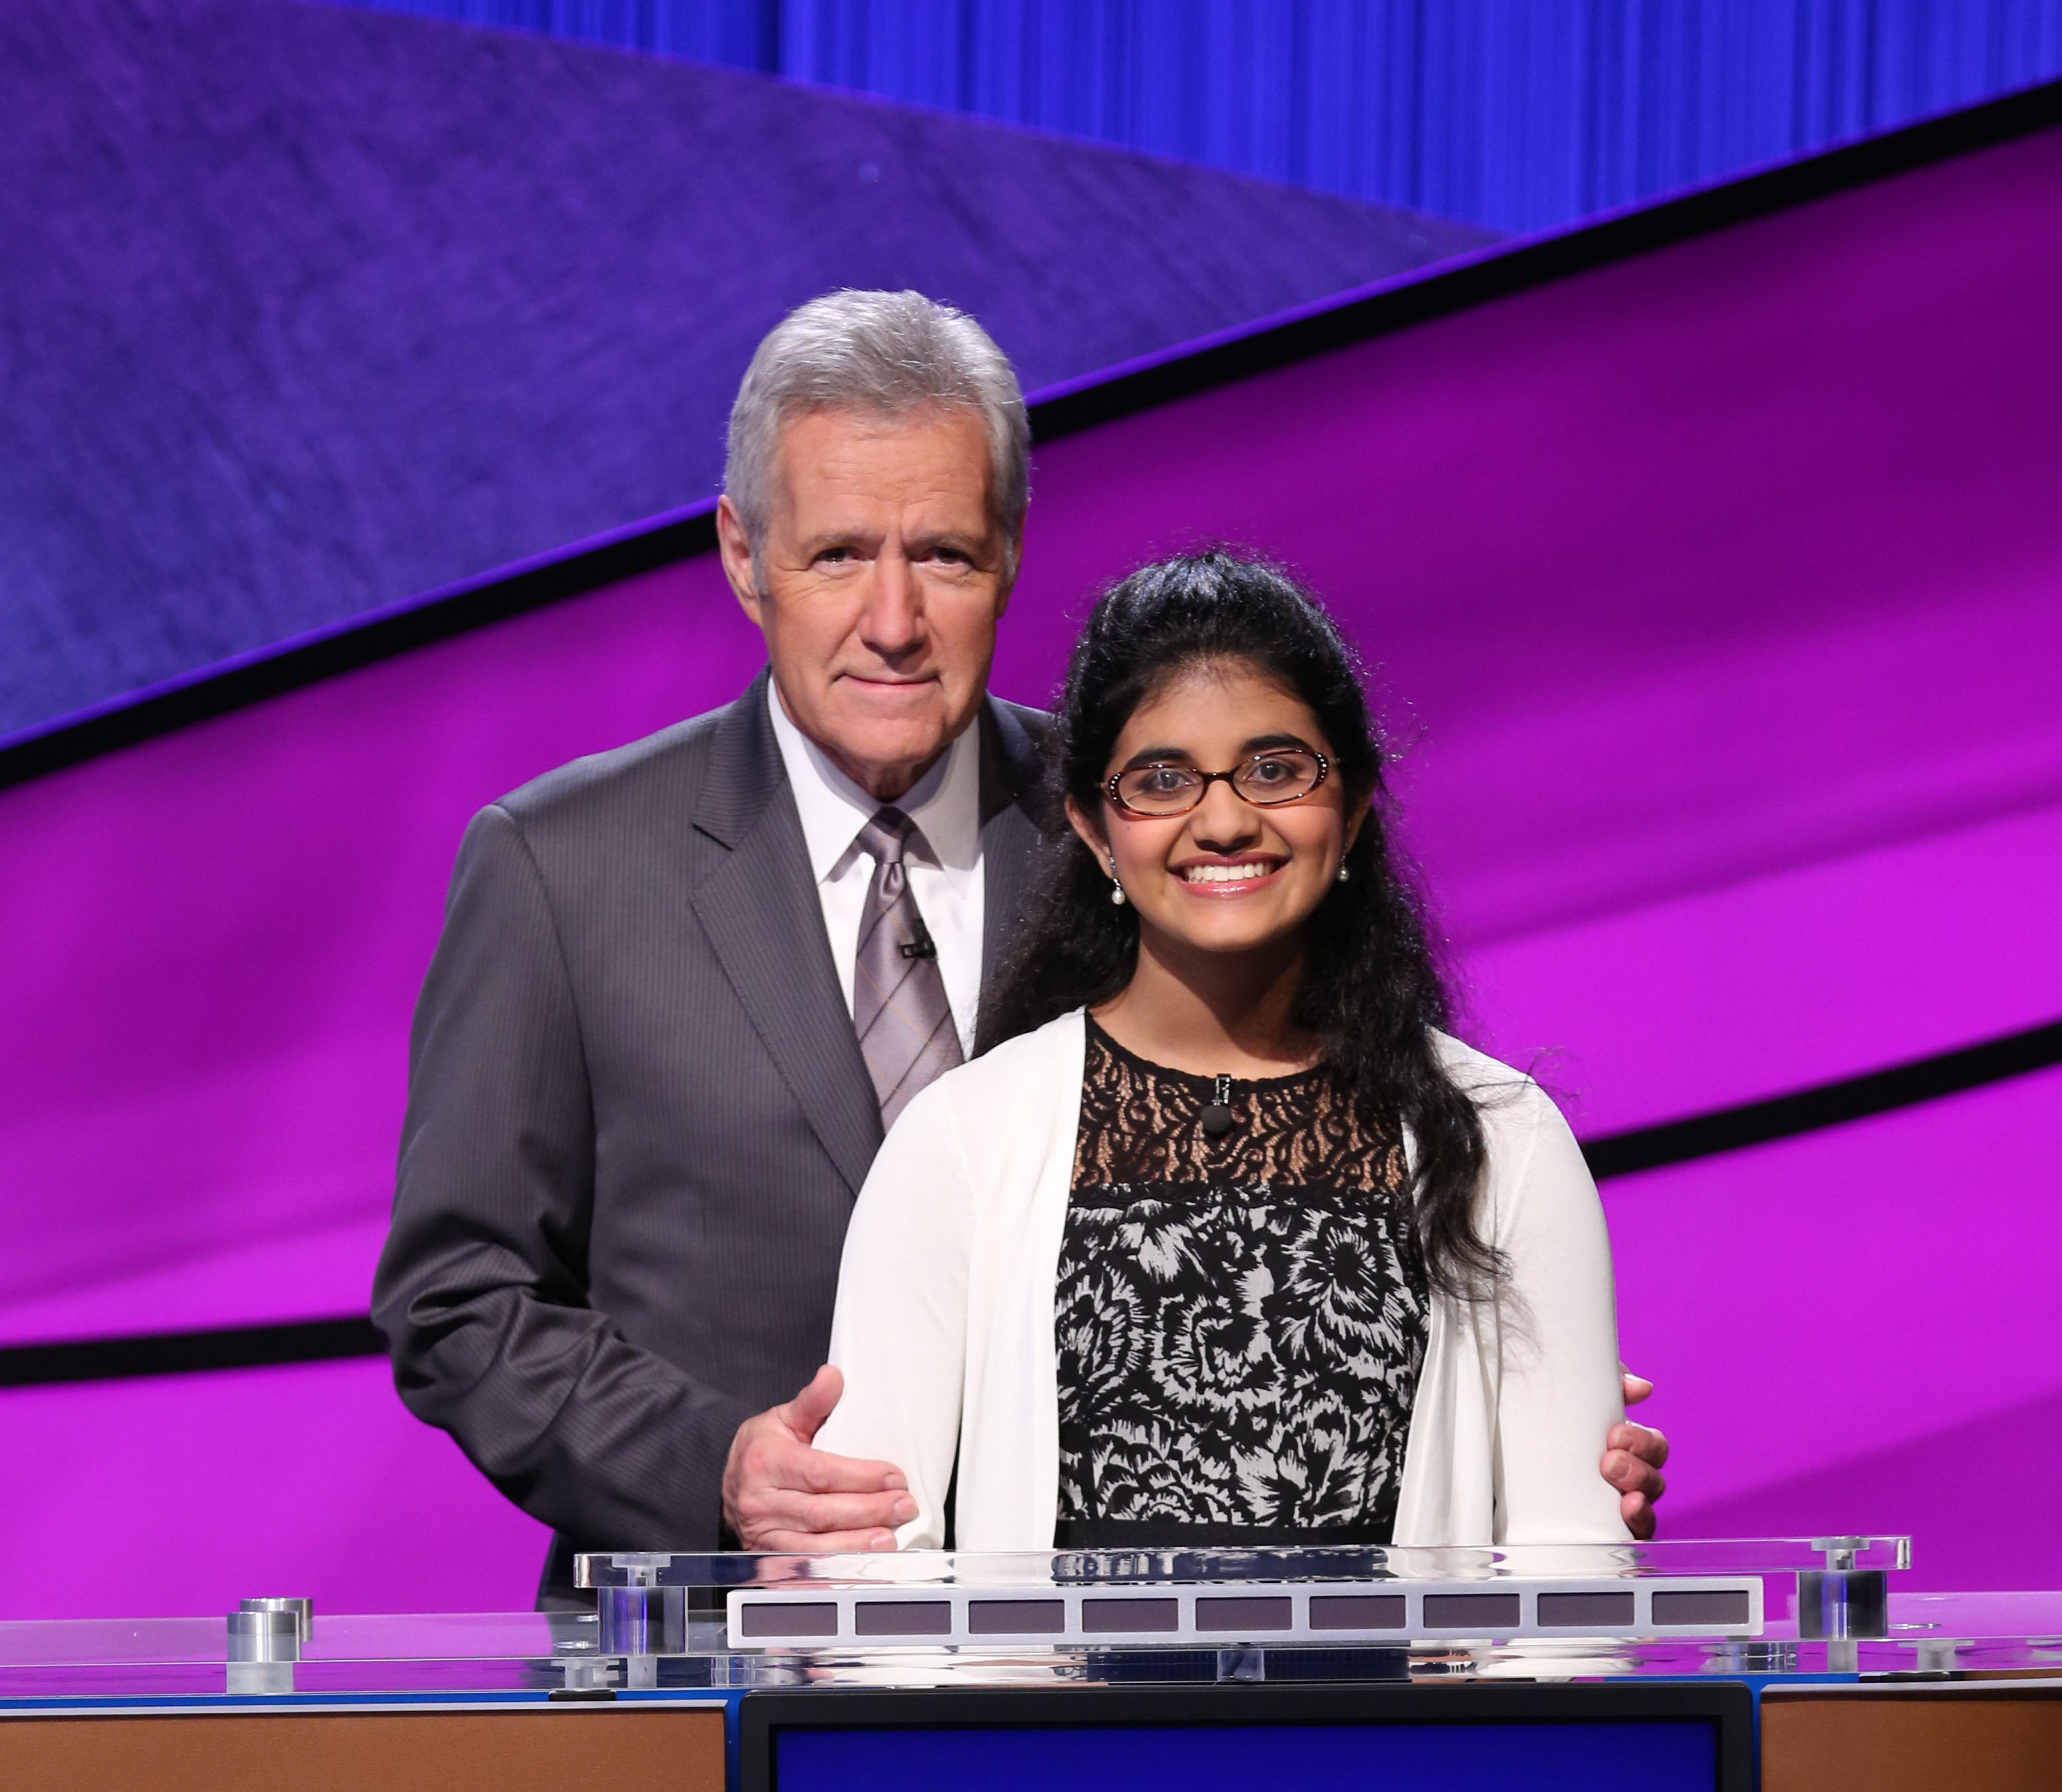 """Ananya Nrusimha, 16, of East Amherst, poses with """"Jeopardy!"""" host Alex Trebek during filming in March."""